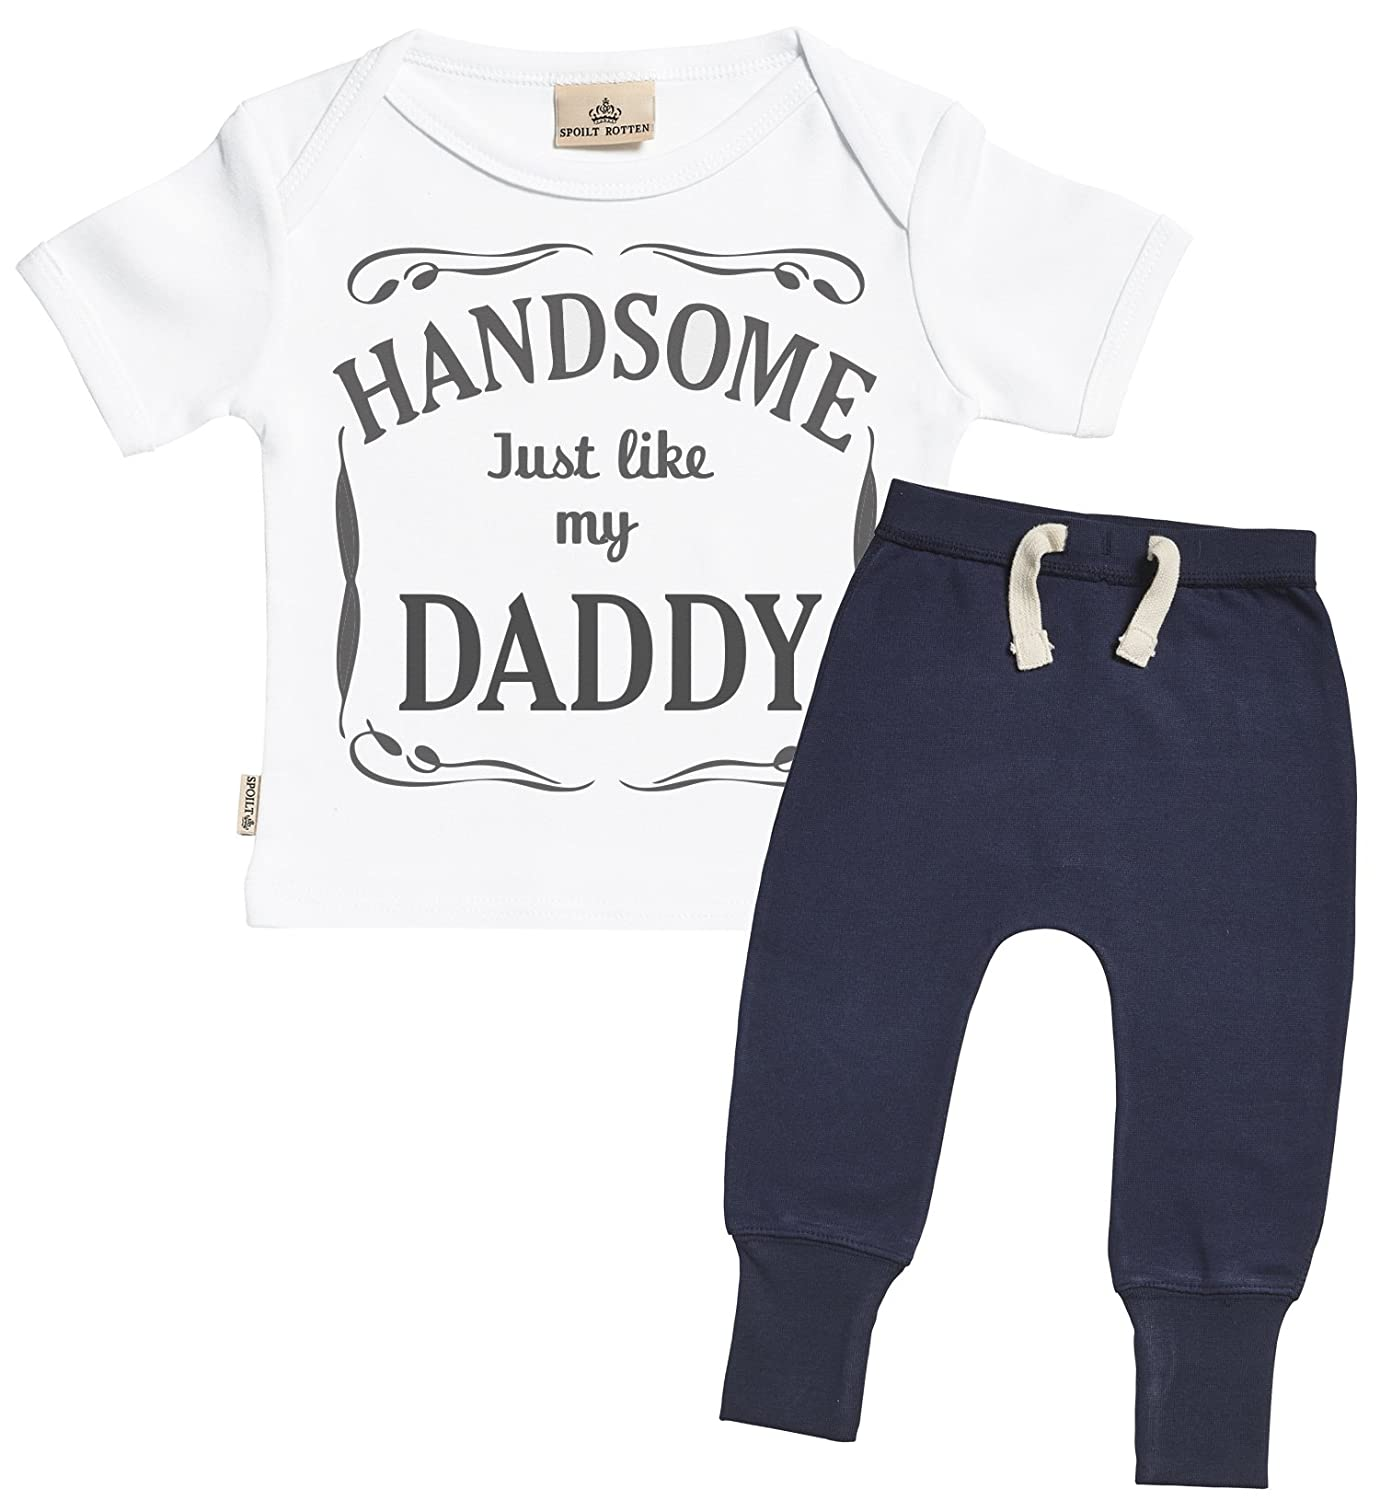 3f5a56480 Amazon.com  SR - Handsome Just Like My Daddy Design Baby Outfit ...